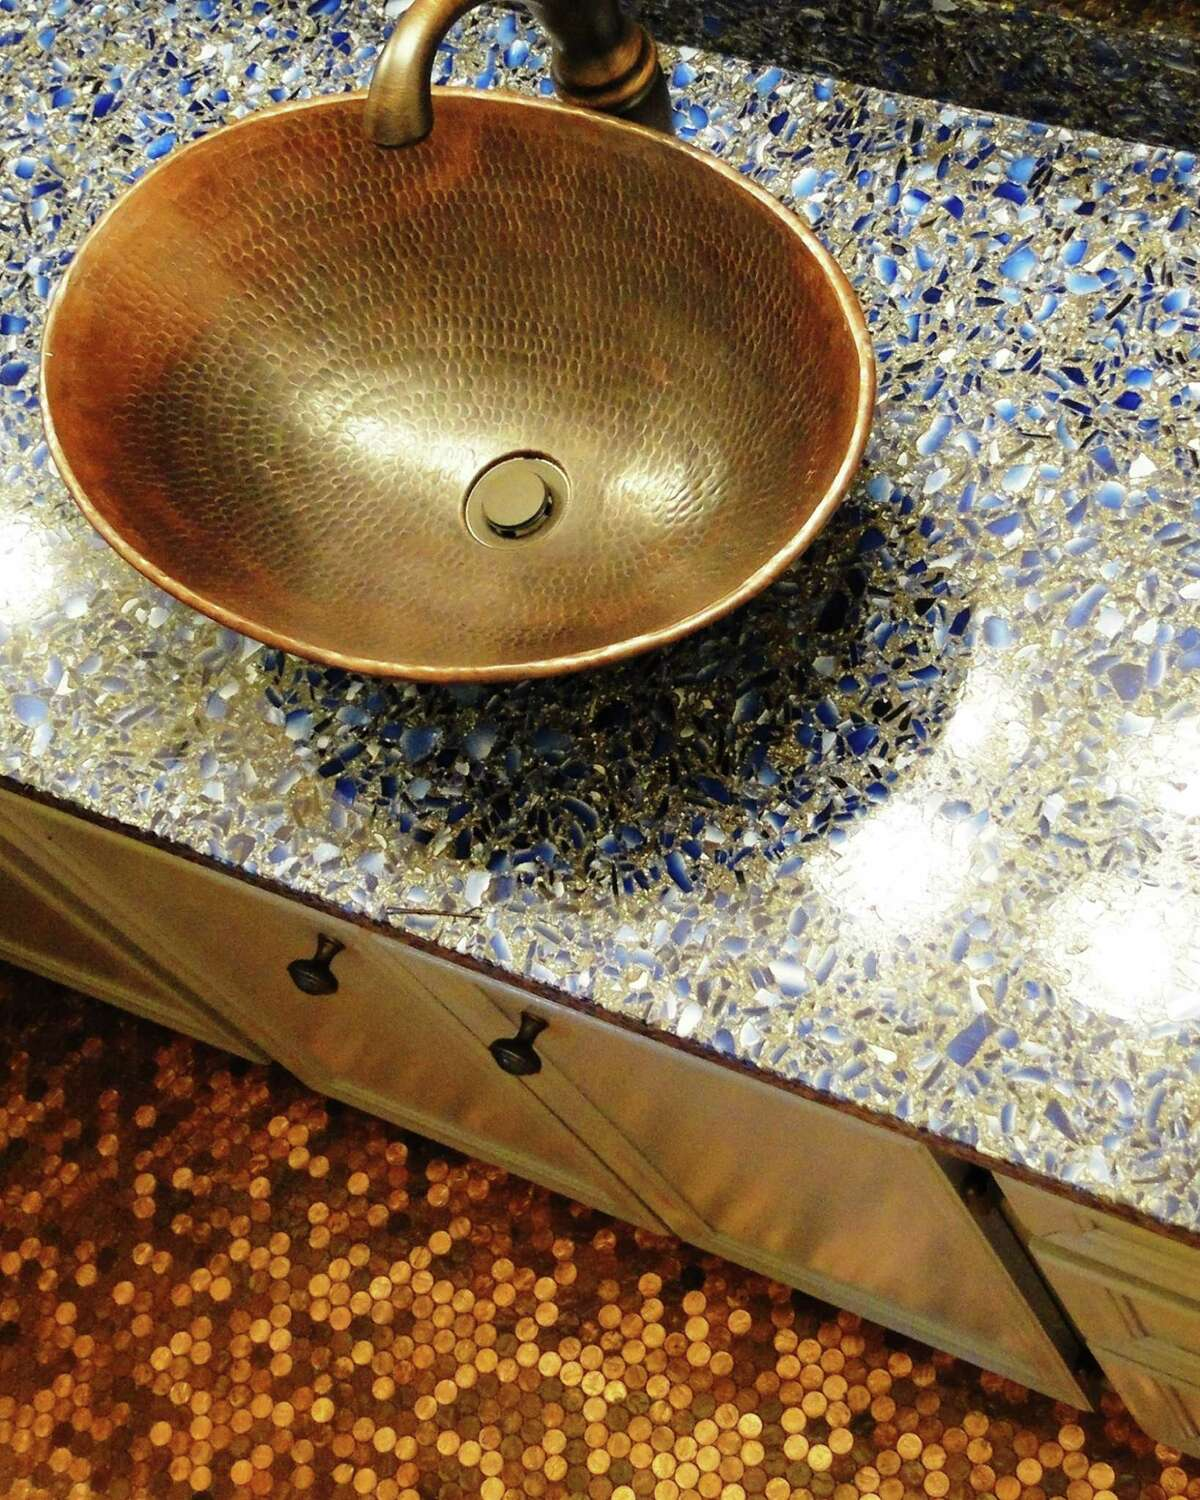 A hammered copper sink complements the floor of pennies in the bathroom floor of New Braunfels resident Doreen Fisher. Fisher placed the pennies --almost 10,000 of them -- and sealed them with epoxy. The Vetrazzo counter is made of recycled liquor bottles.